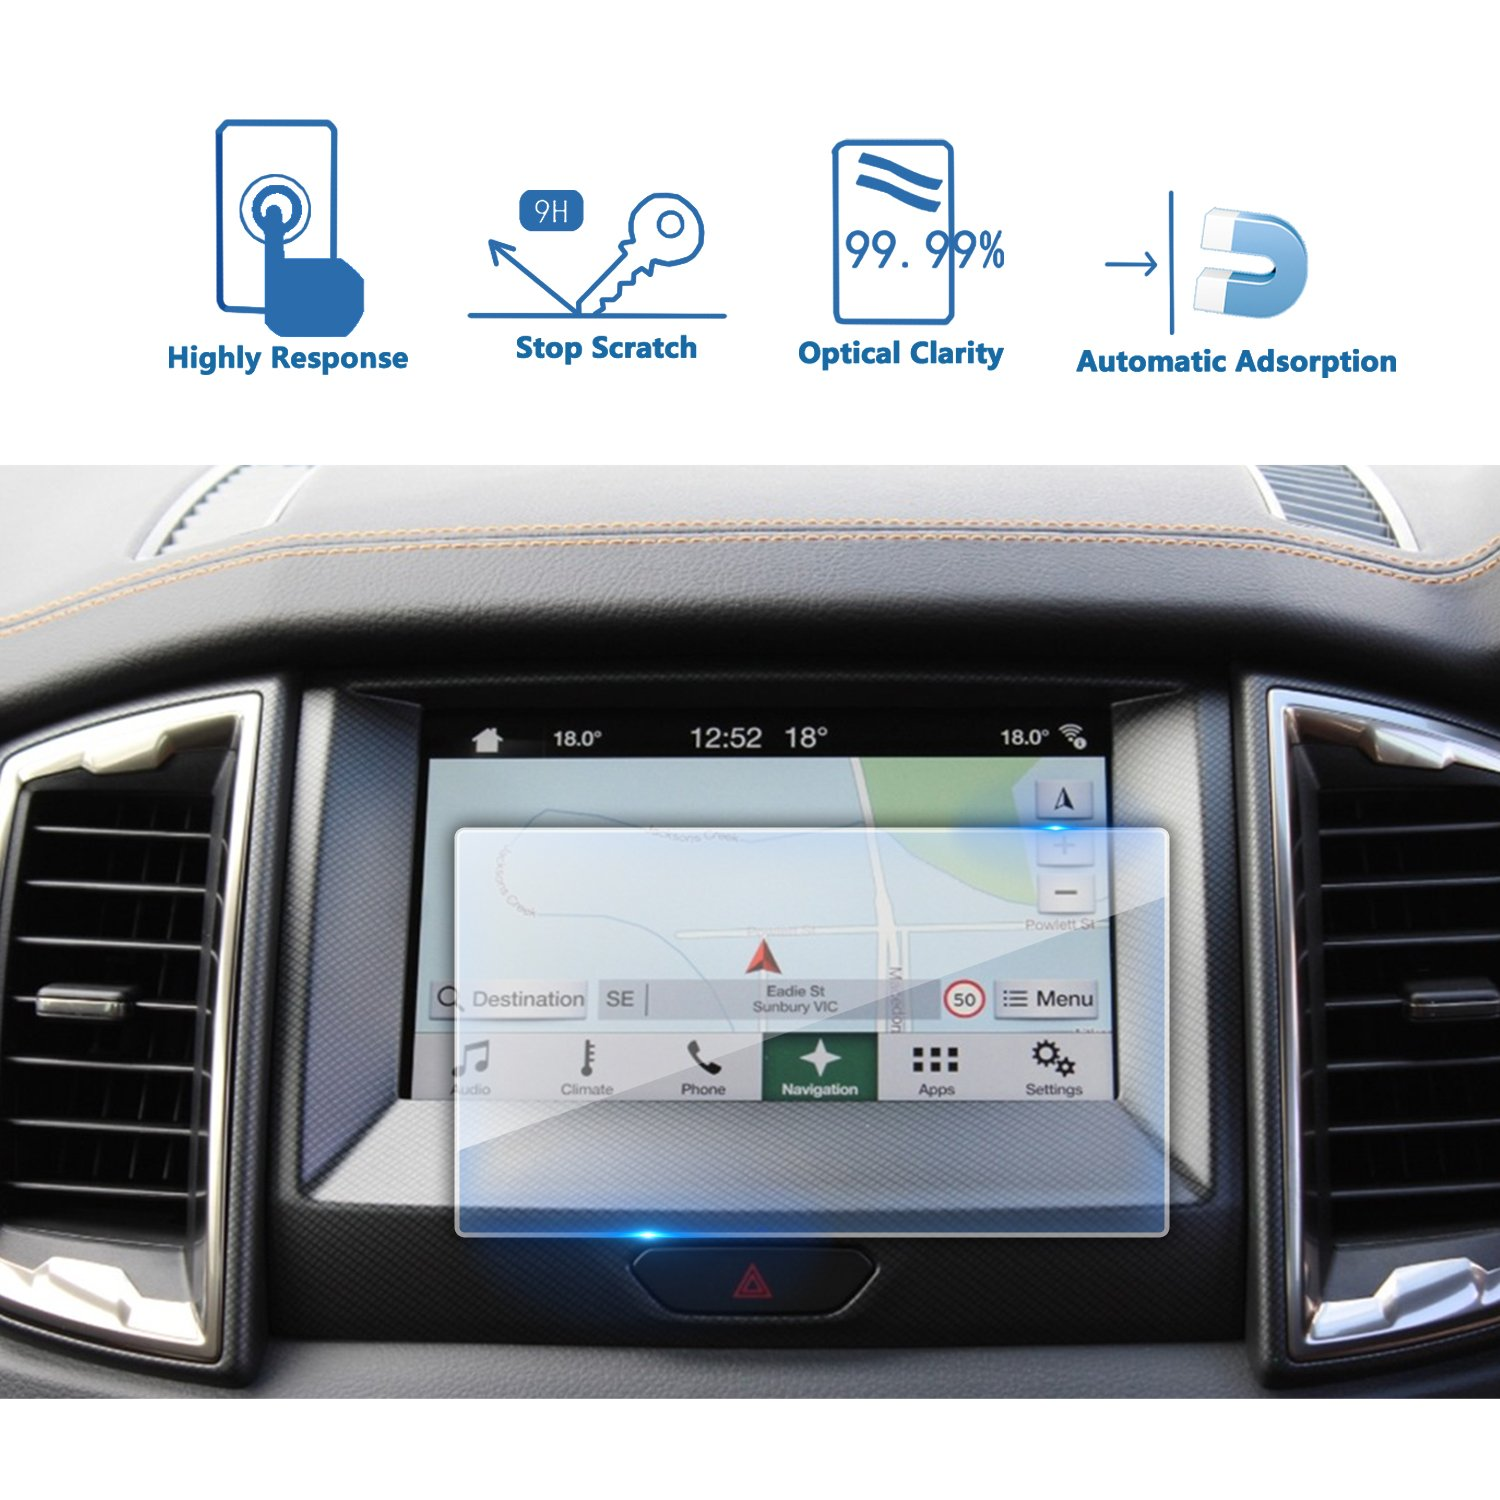 LFOTPP 2016 2017 2018 Ford Everest sync 2 sync3 Car Navigation Tempered  Glass Screen Protector, Center Touch Protective Film, High Clarity &